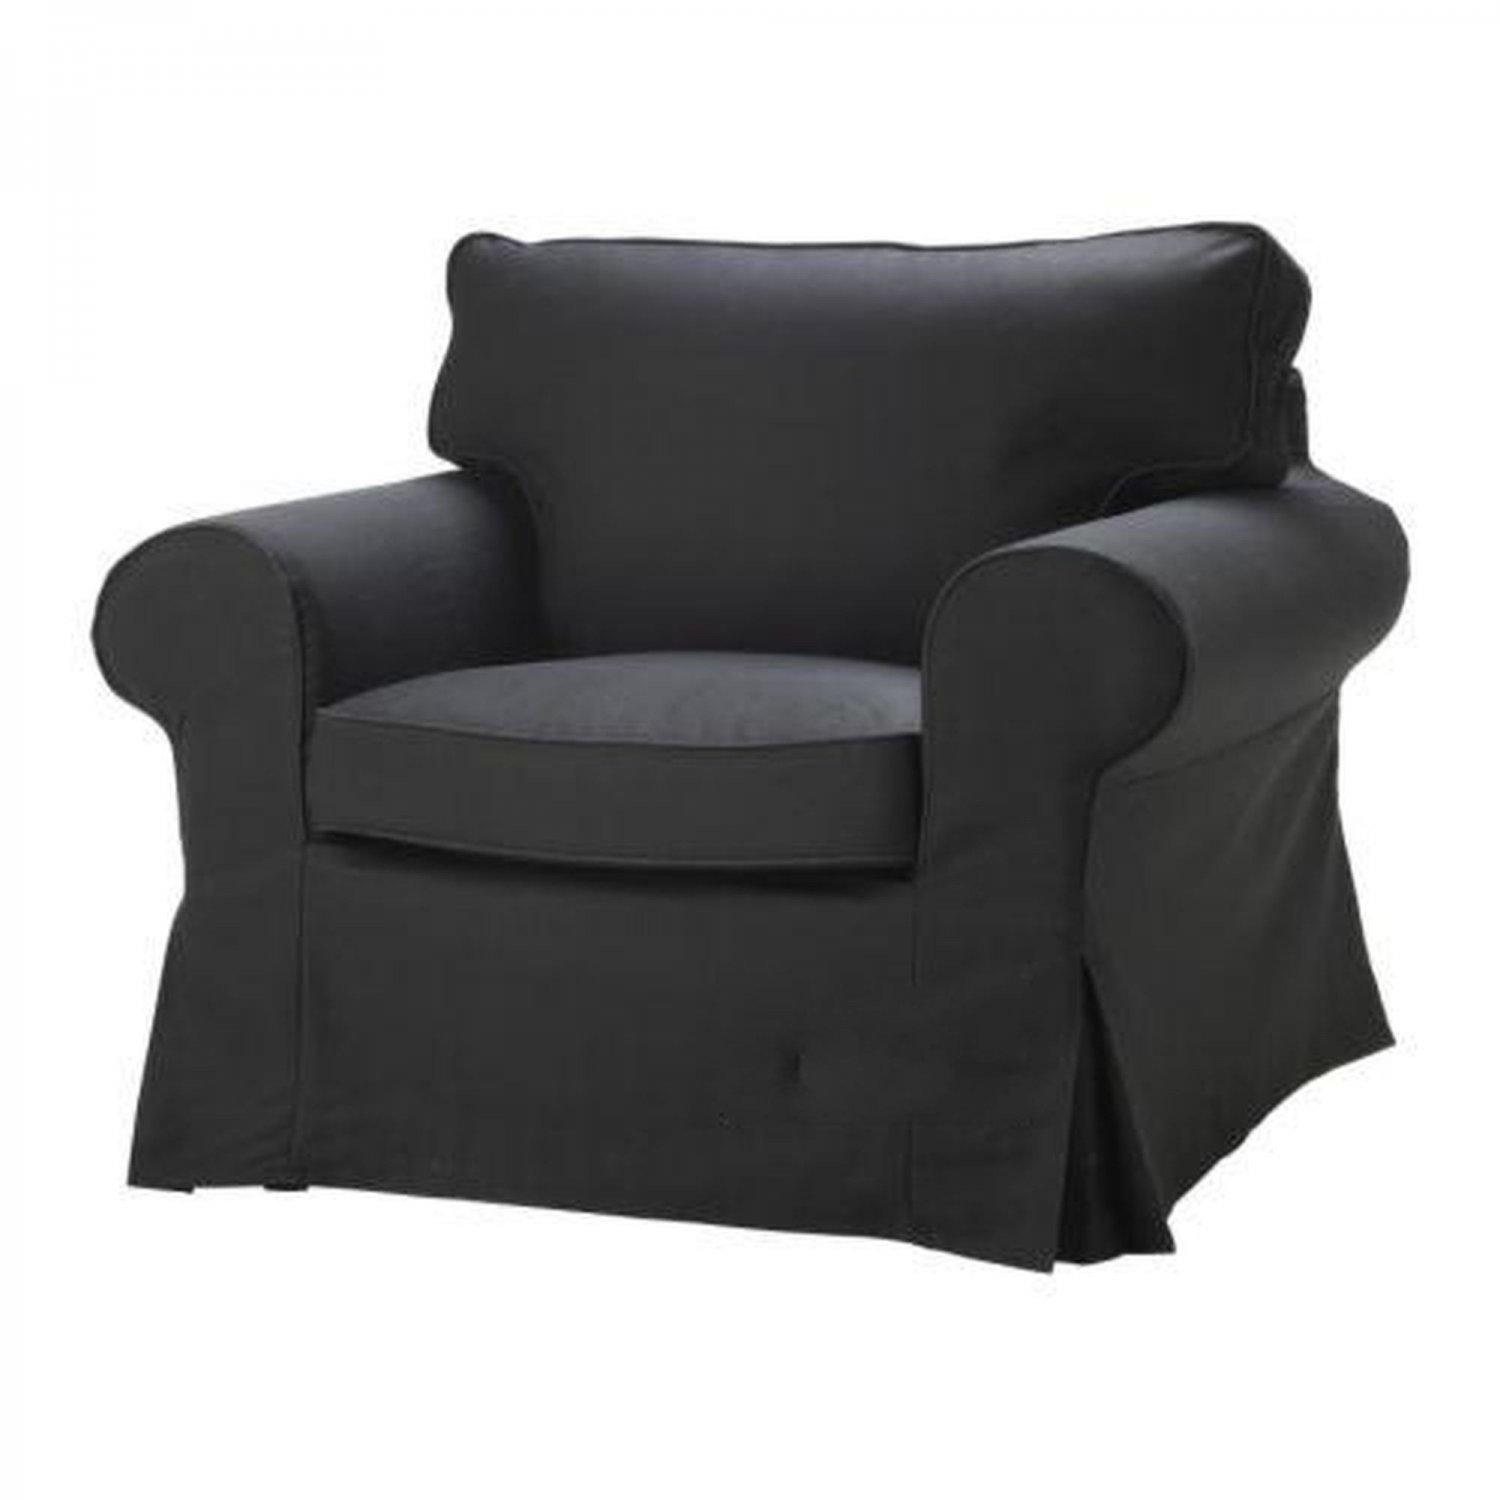 ikea arm chairs blue wing back chair ektorp armchair slipcover idemo black cover